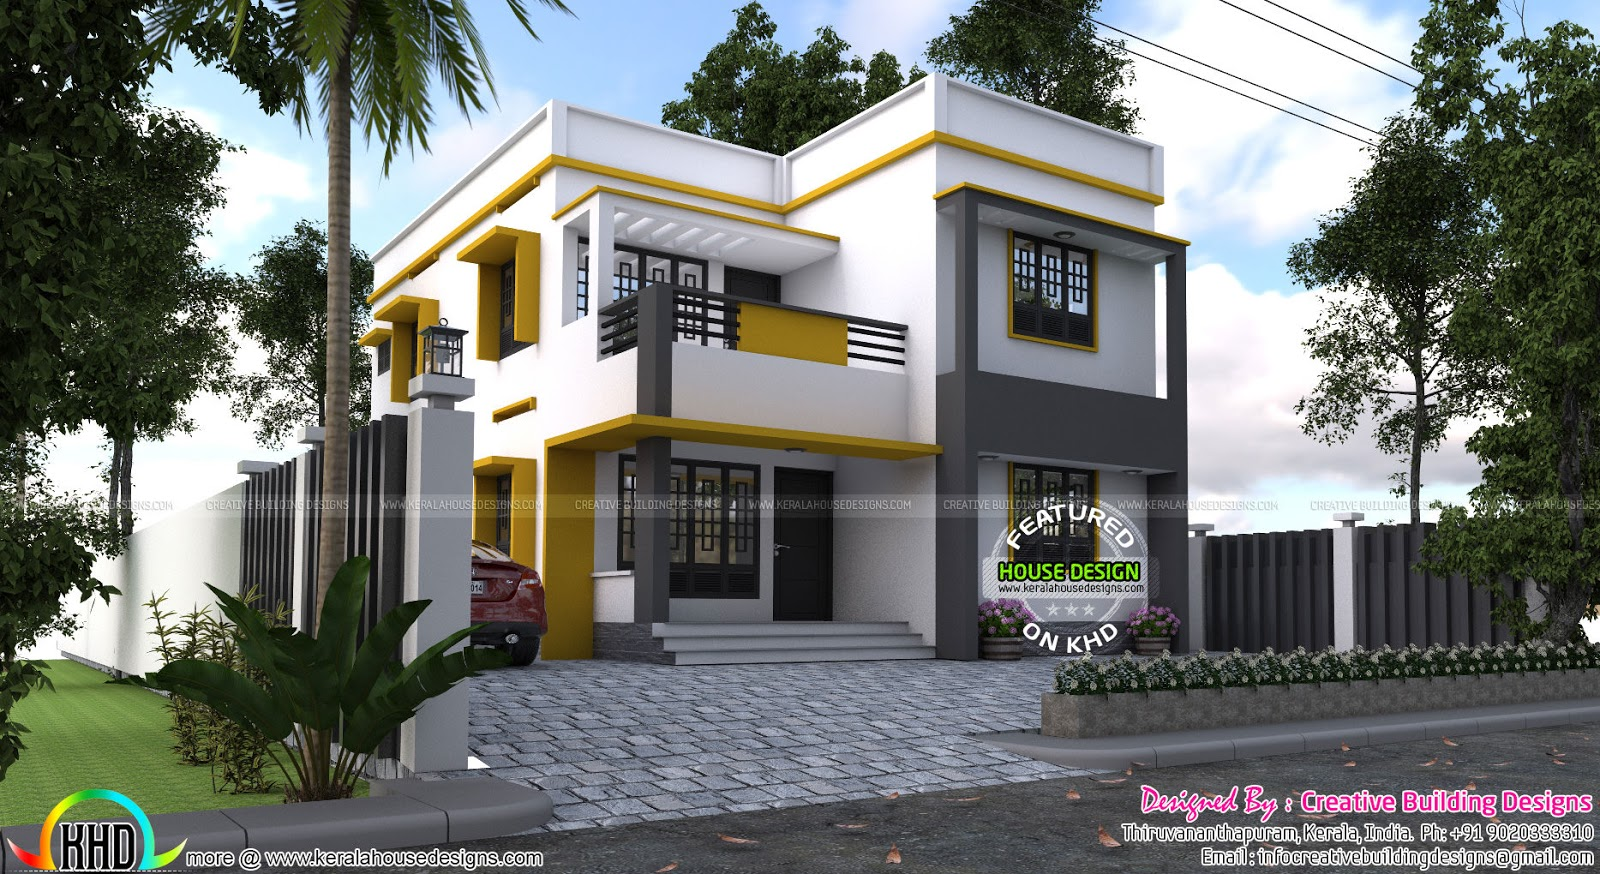 house plan by creative building designs kerala home design and floor plans. Black Bedroom Furniture Sets. Home Design Ideas